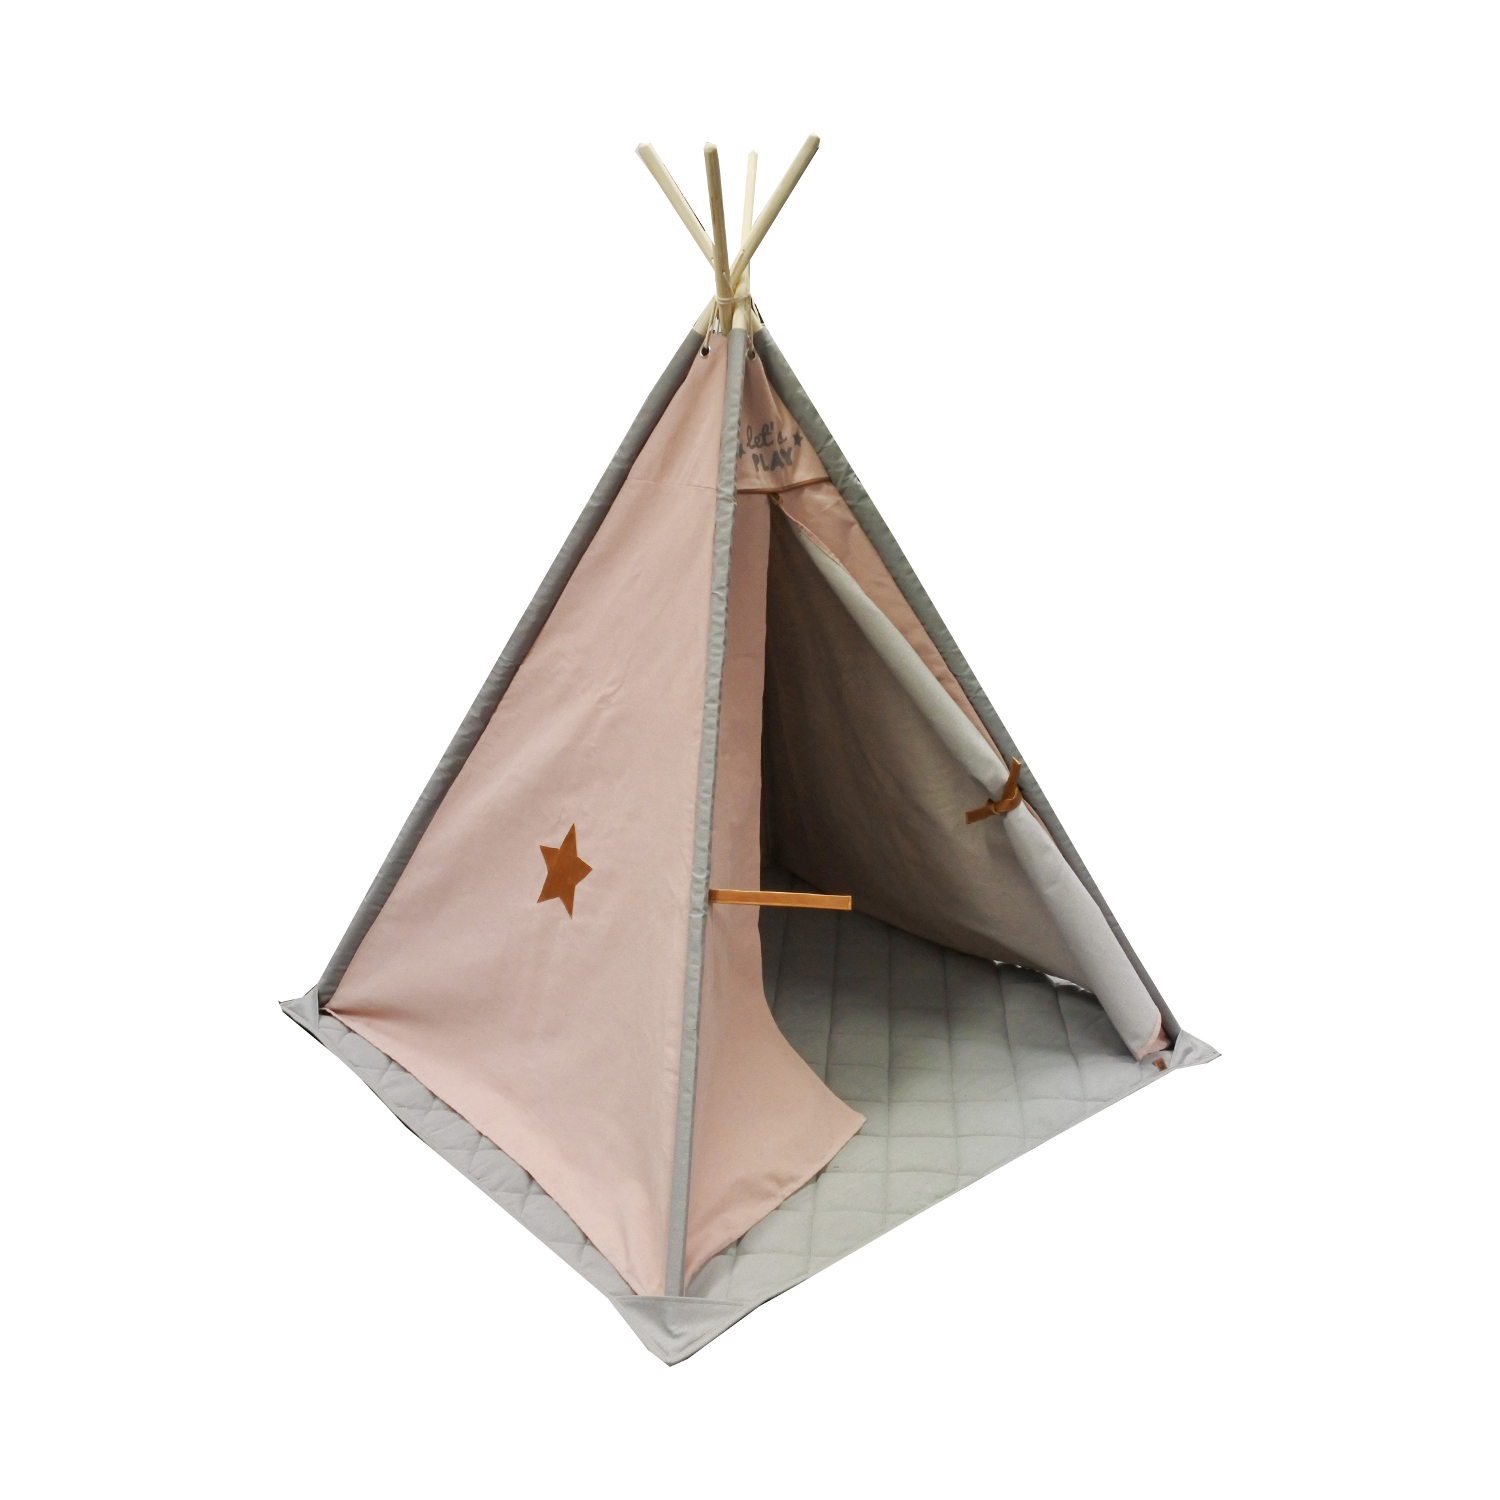 Overseas Tipi Tent Canvas Luxe Olive Ice 18518071 Trixie